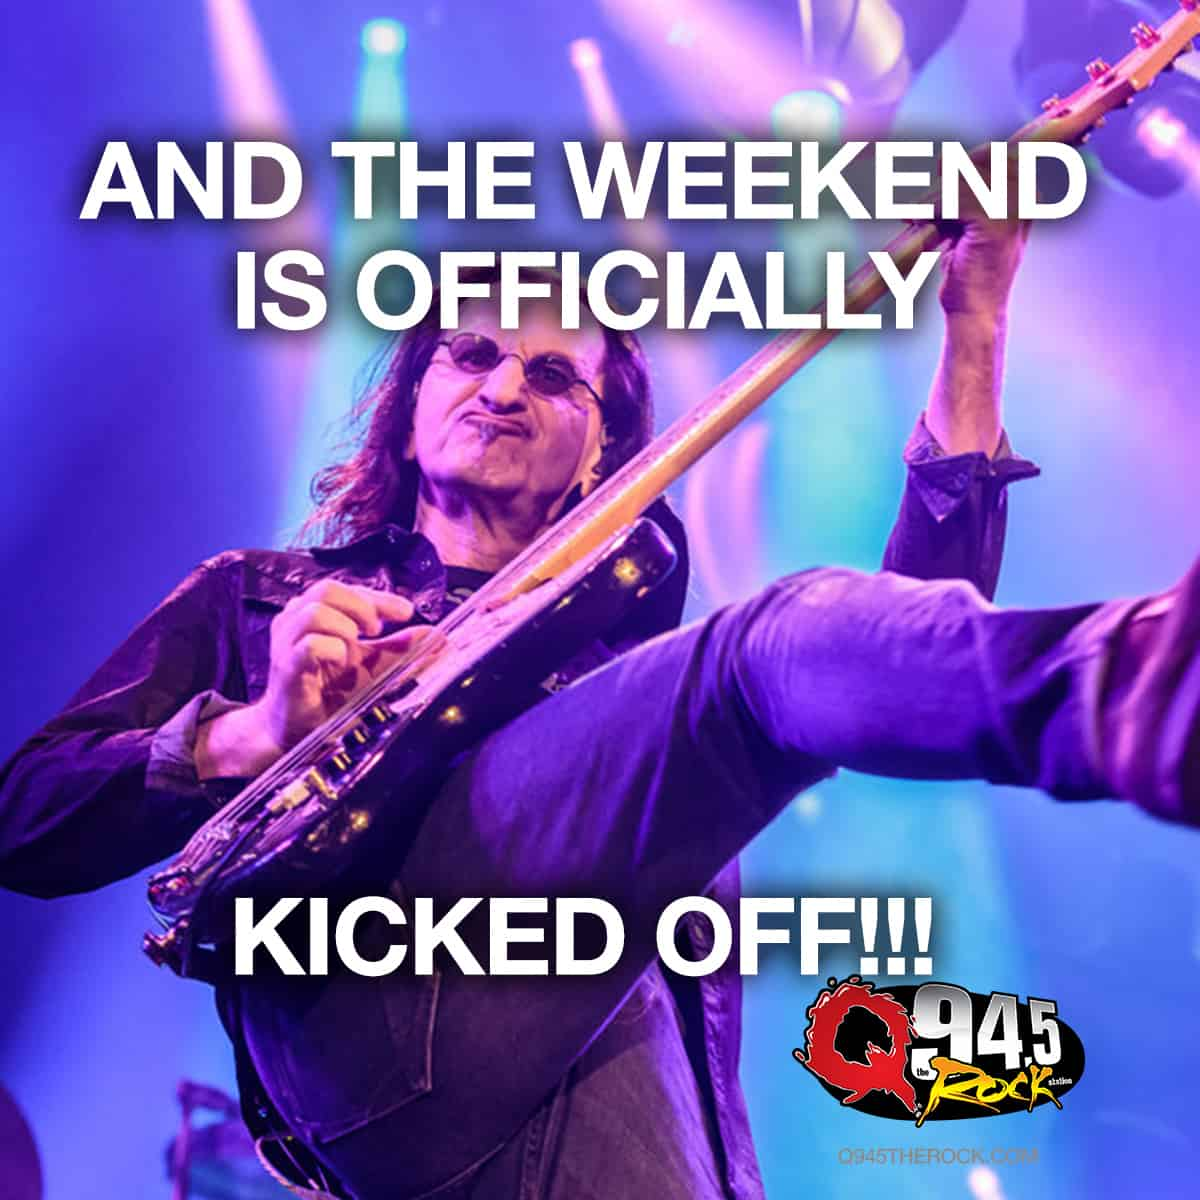 It's here! It's finally here... the Weekend.